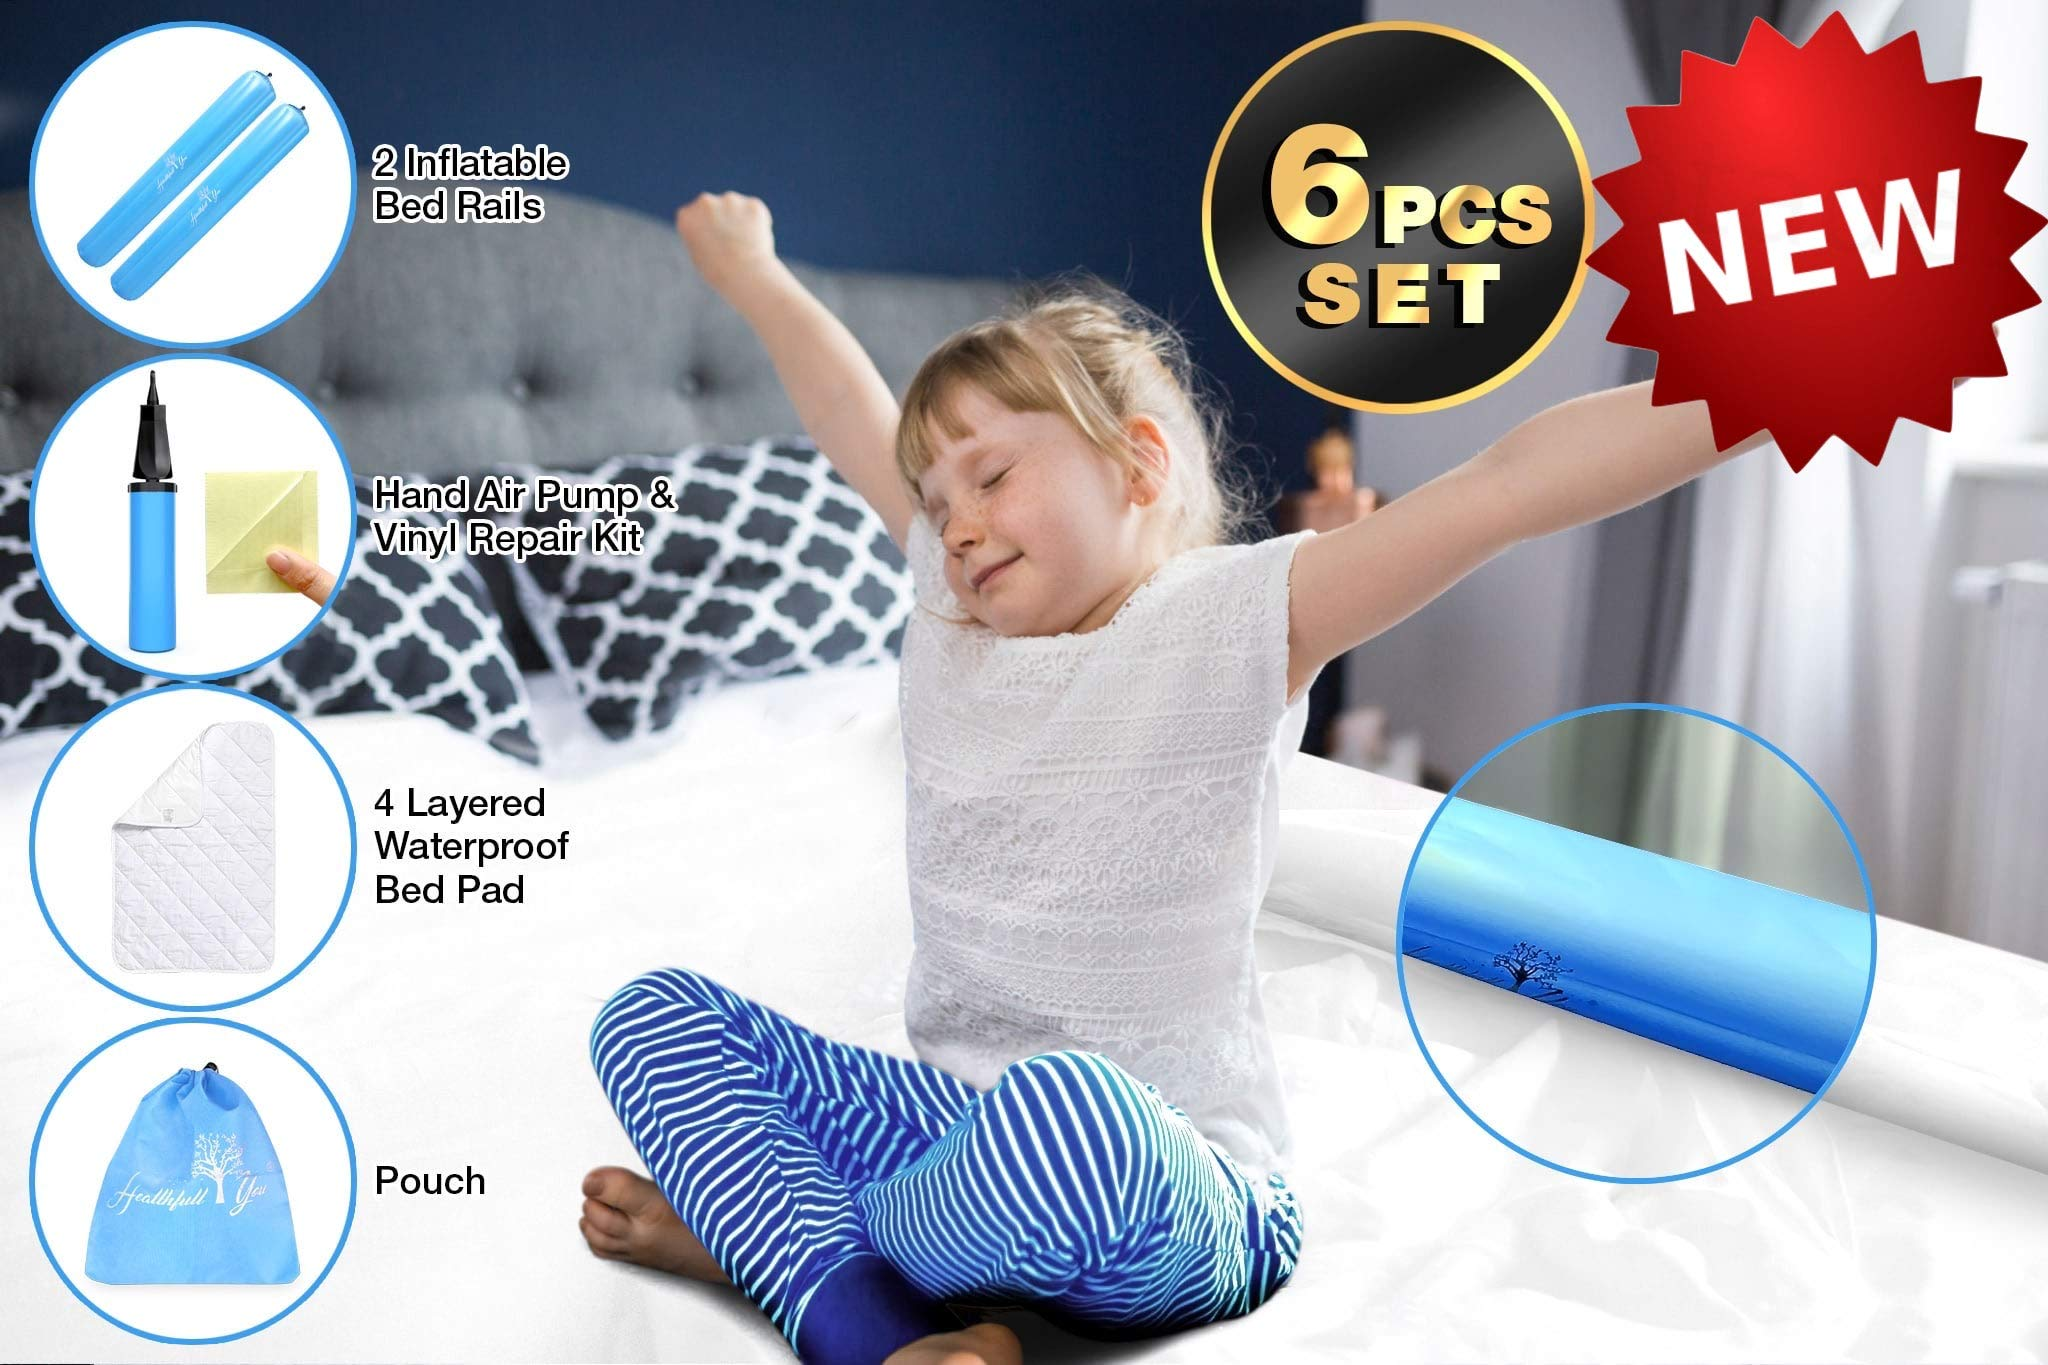 Our Toddler Bed Rail Guard is The Perfect Bed Bumpers for Toddlers. The Inflatable Bed Rail Twin Pack is Available in Pink or Blue Ensuring Both You and Your Precious One Have A Good Night's Sleep